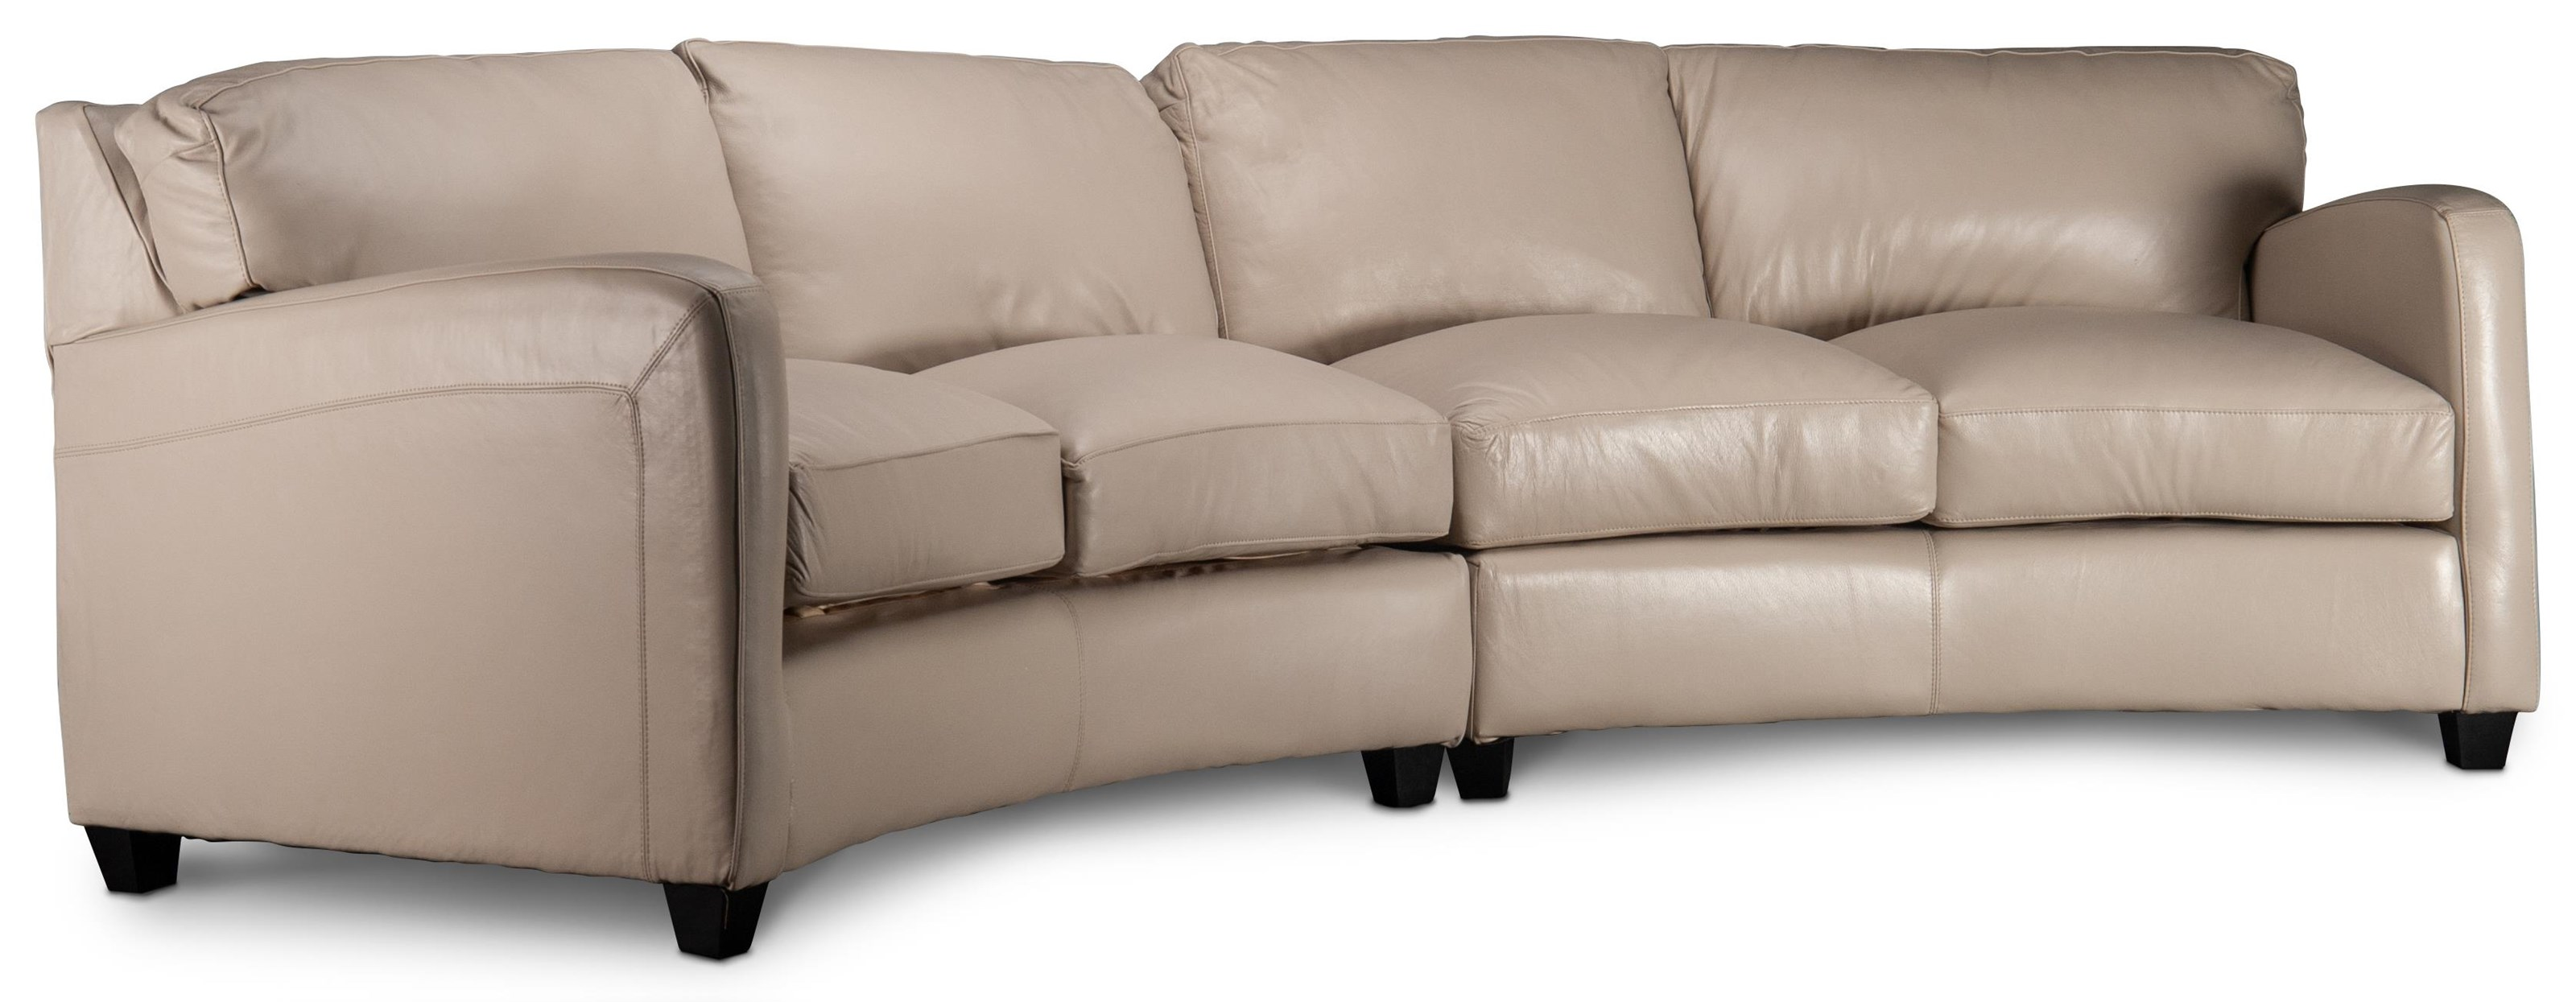 Brynlee Brynlee Leather Sofa by USA Premium Leather at Morris Home